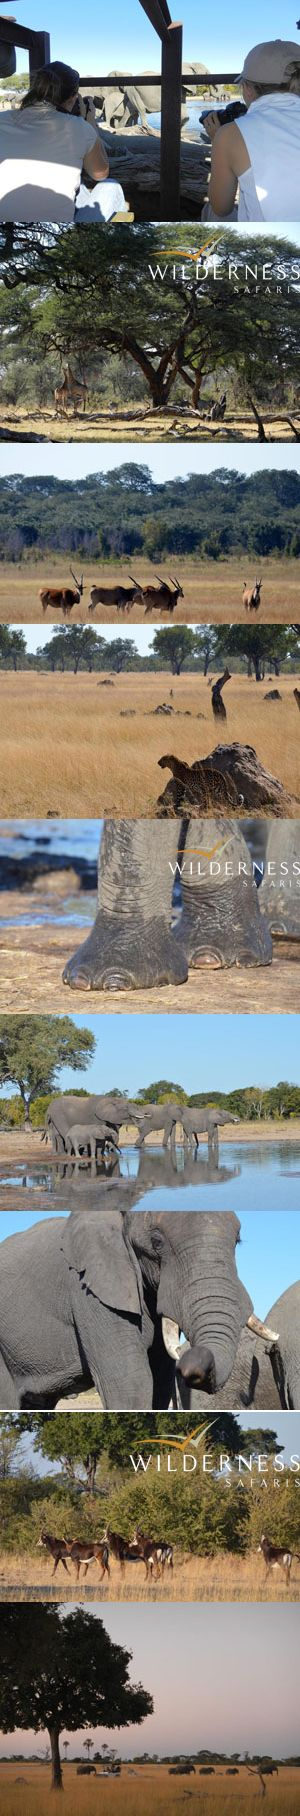 We Are Wilderness - Zimbabwe / Hwange - June 2013 - Click on the image for more.